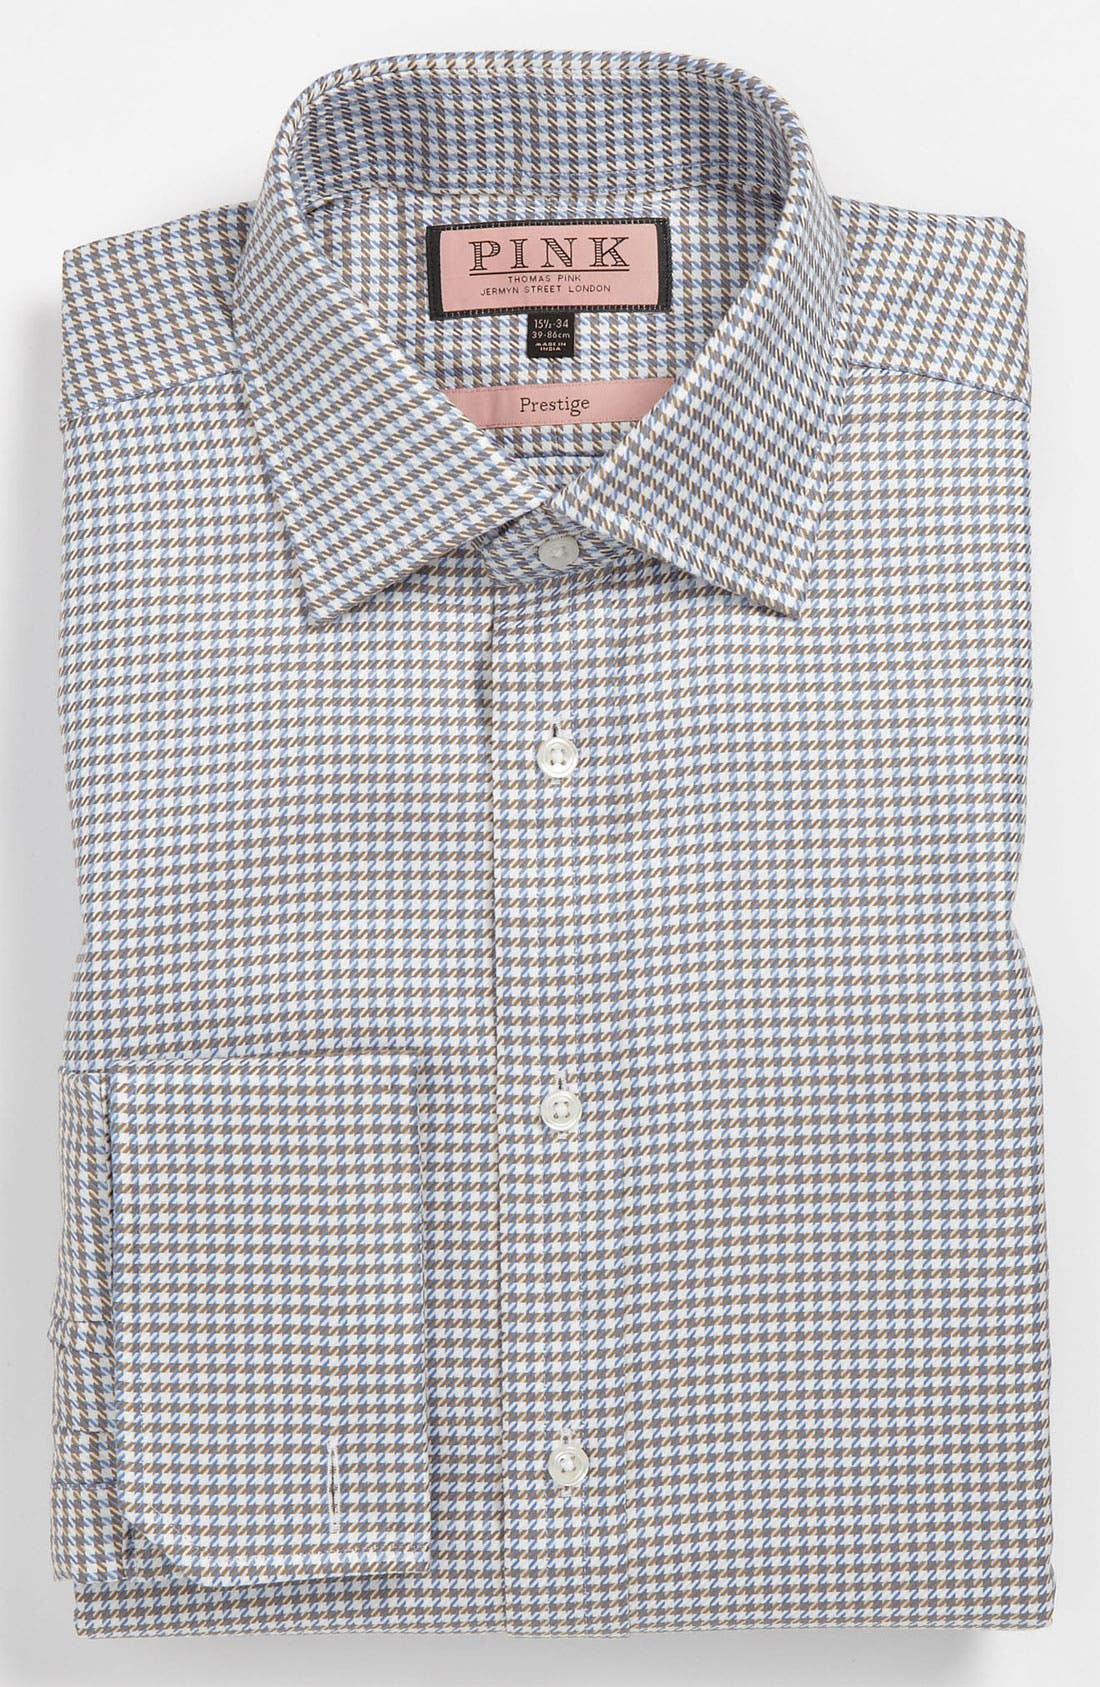 Alternate Image 1 Selected - Thomas Pink Classic Fit Prestige Dress Shirt